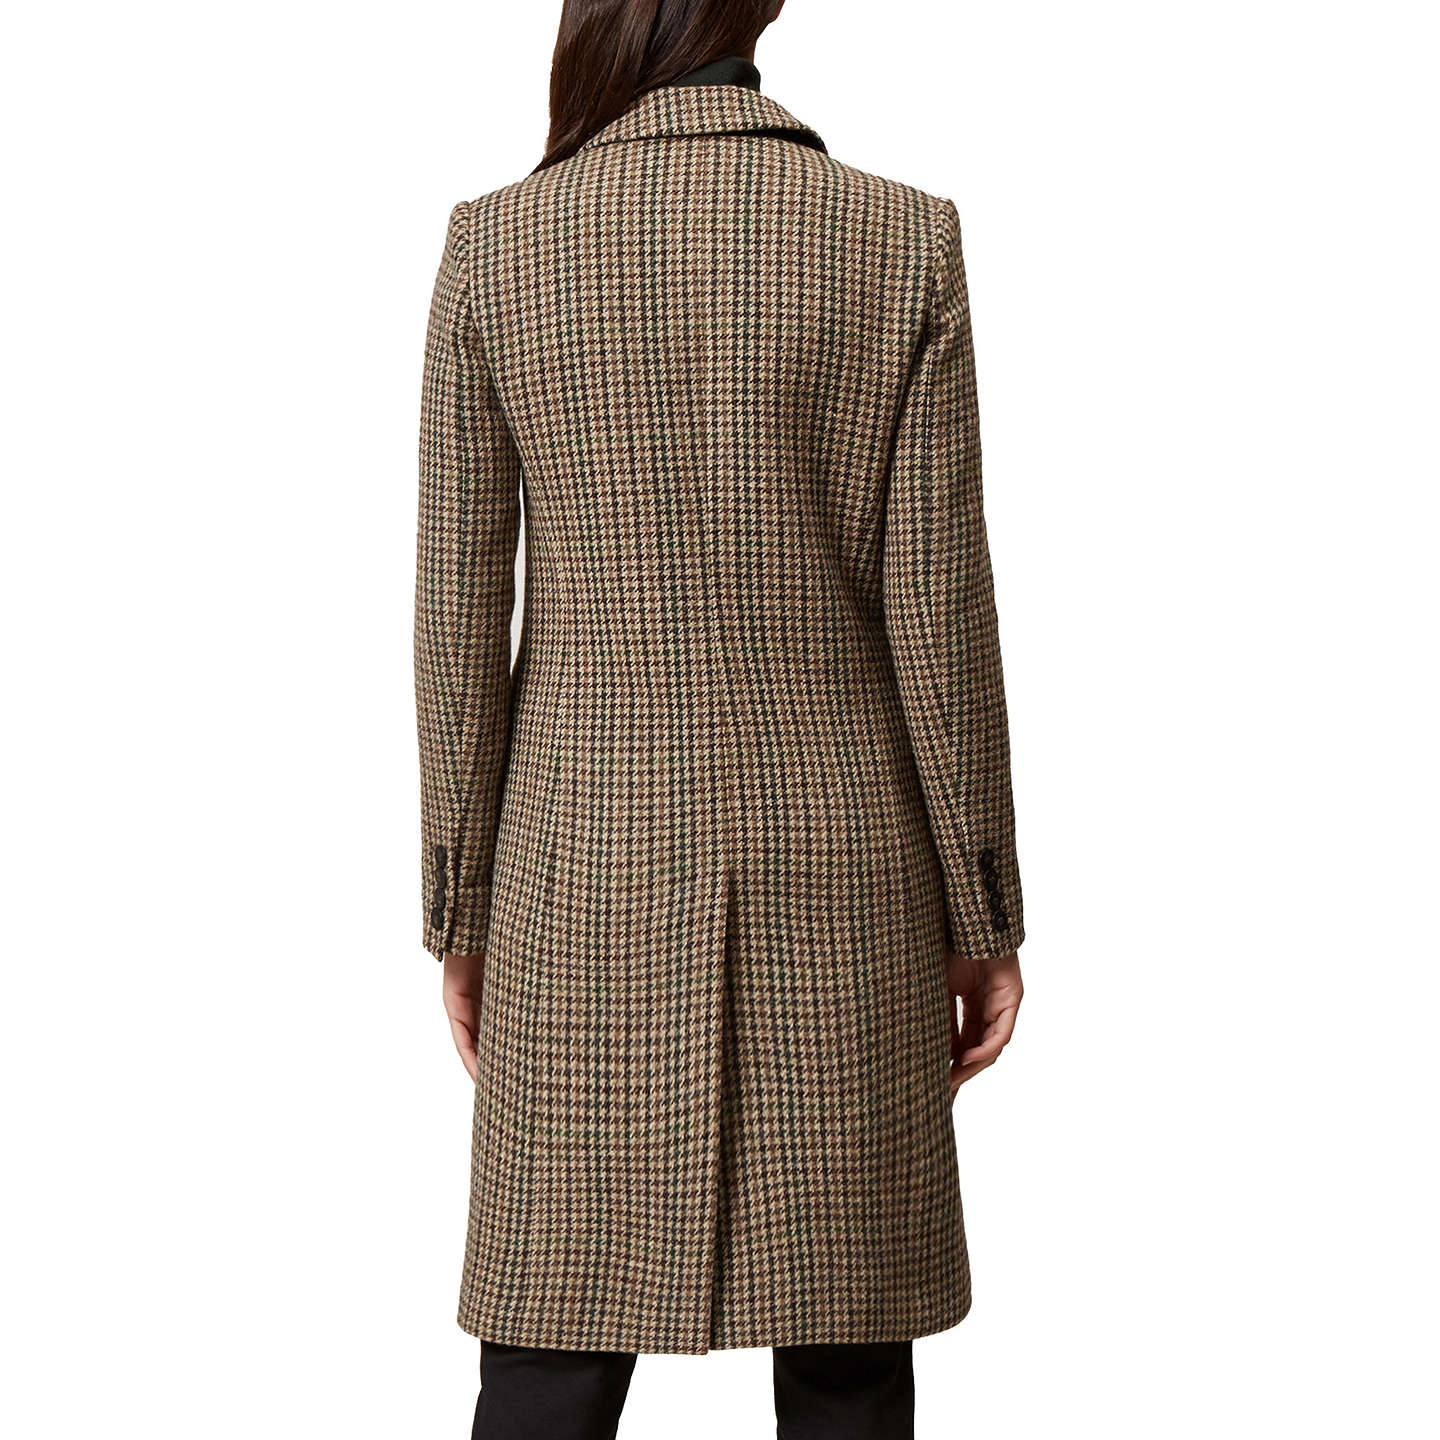 BuyHobbs Tilda Check Coat, Multi, 8 Online at johnlewis.com